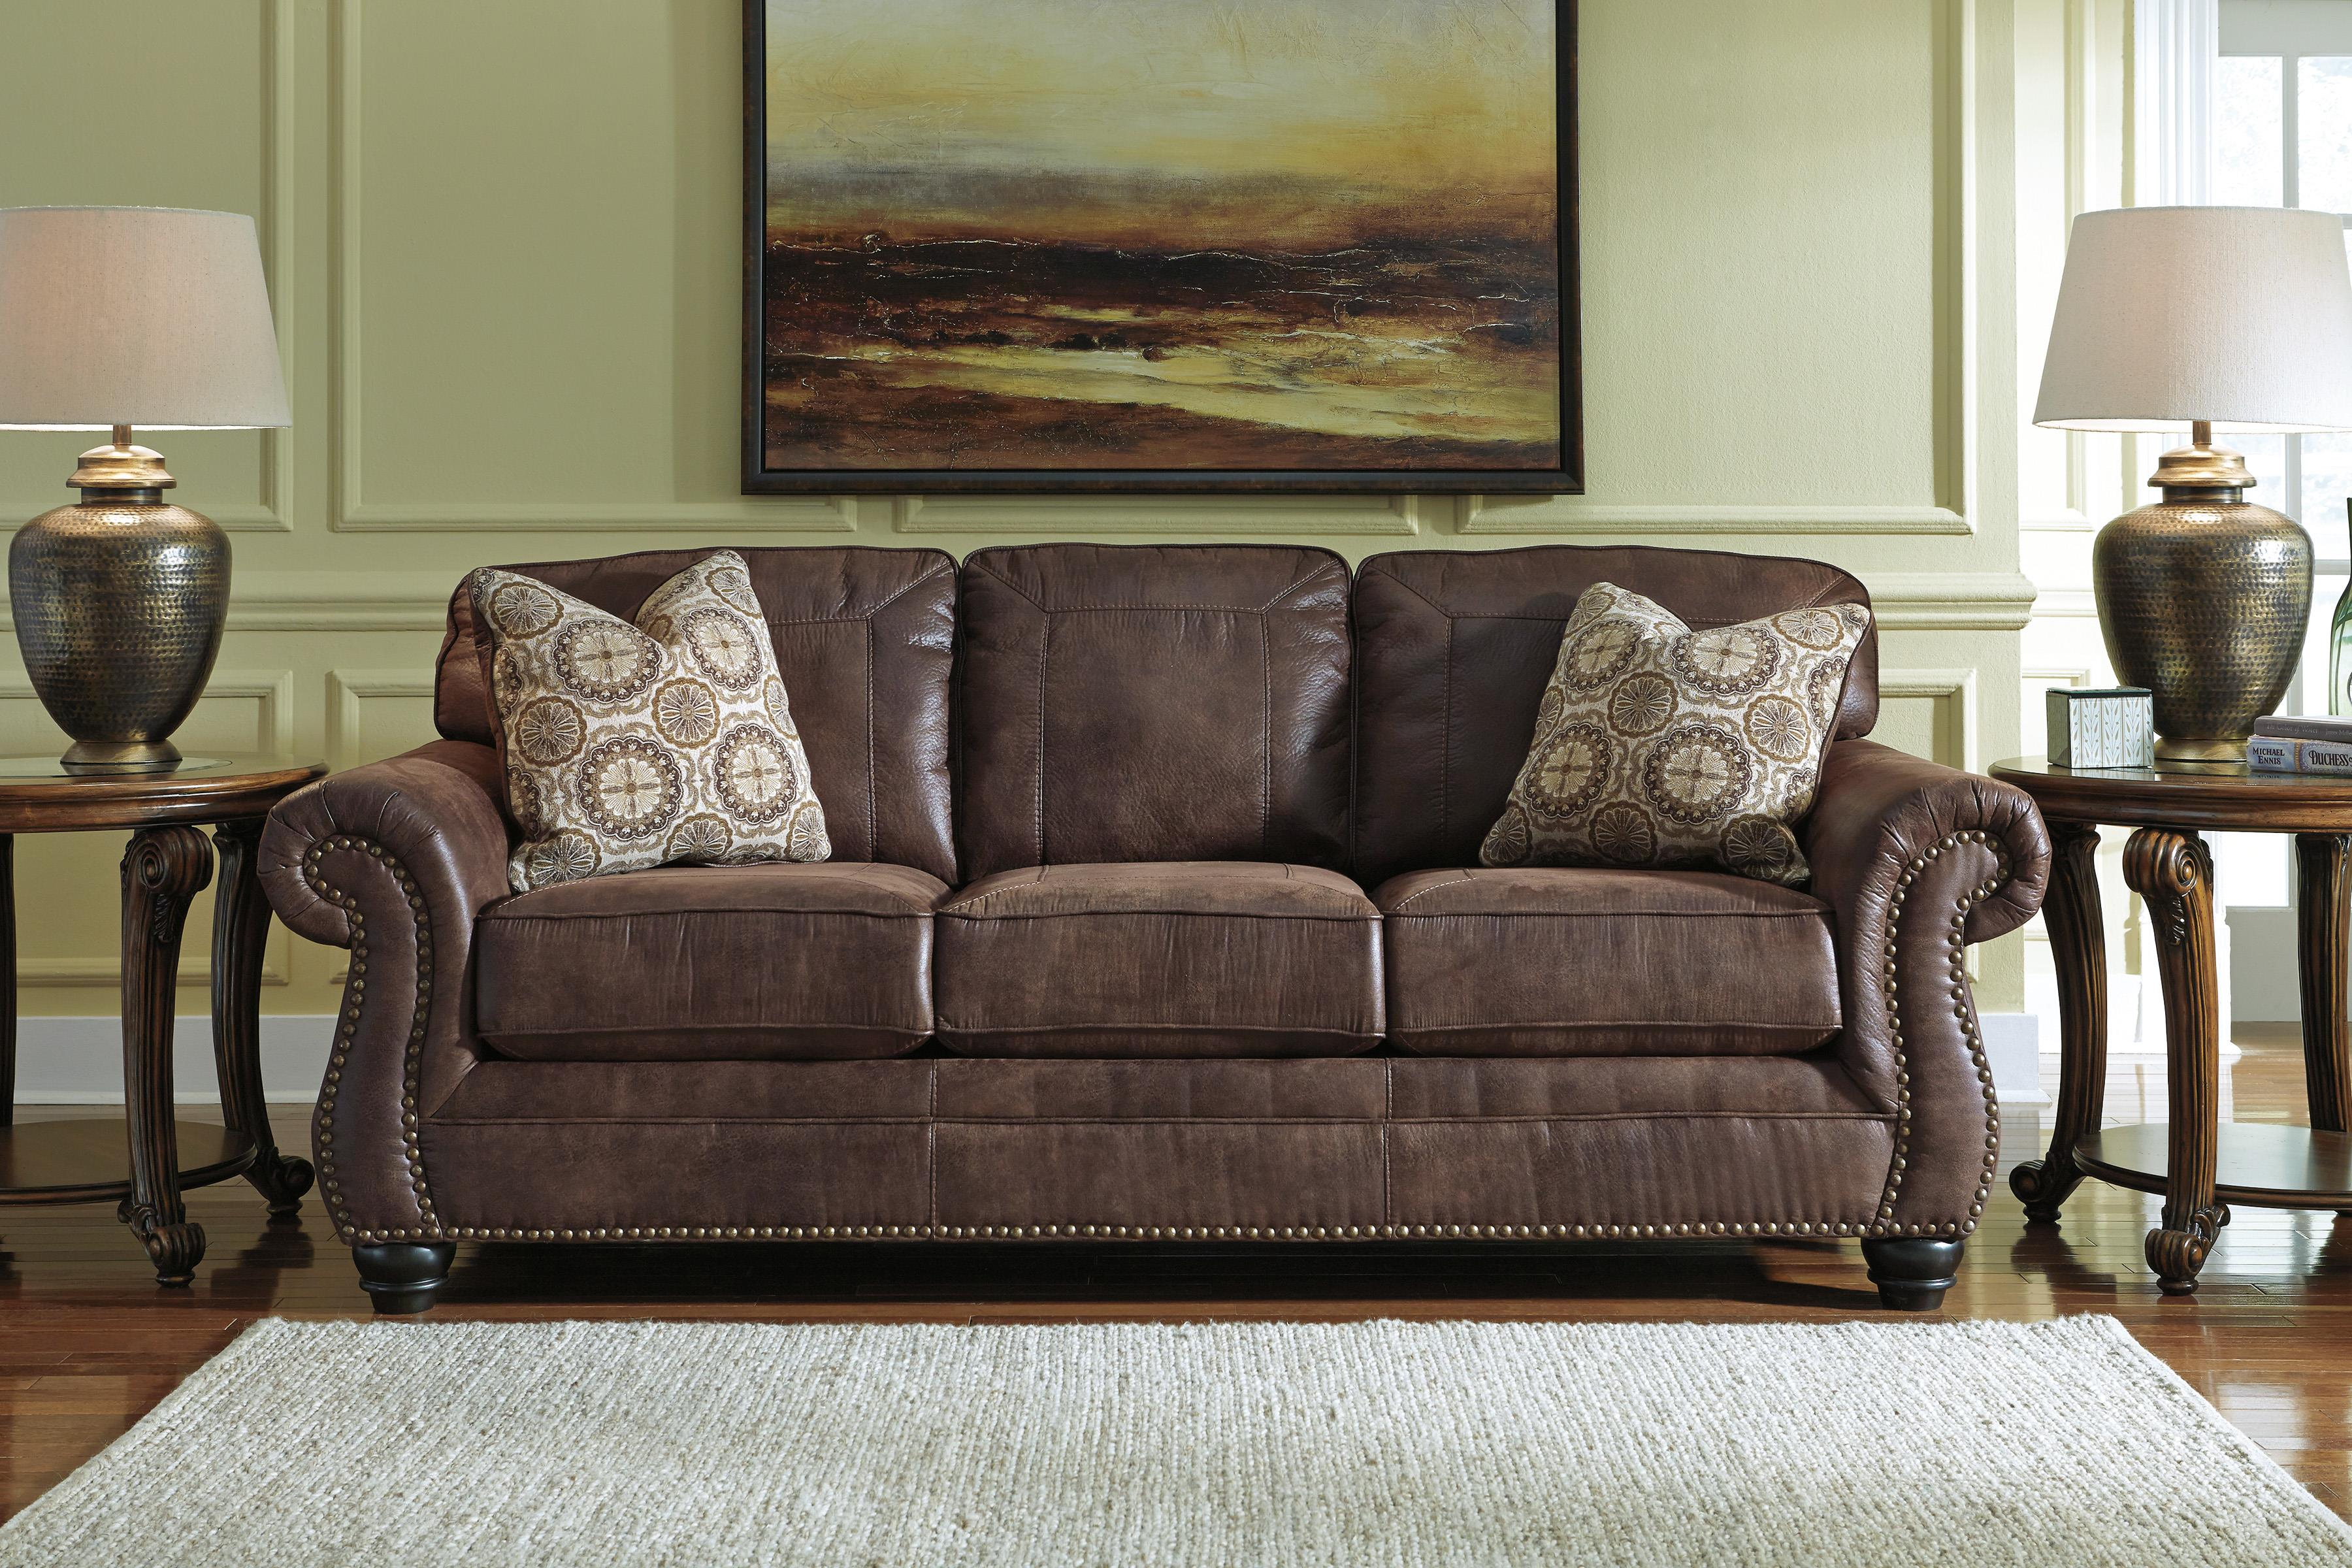 Benchcraft Breville Faux Leather Sofa With Rolled Arms And Nailhead Trim Miskelly Furniture